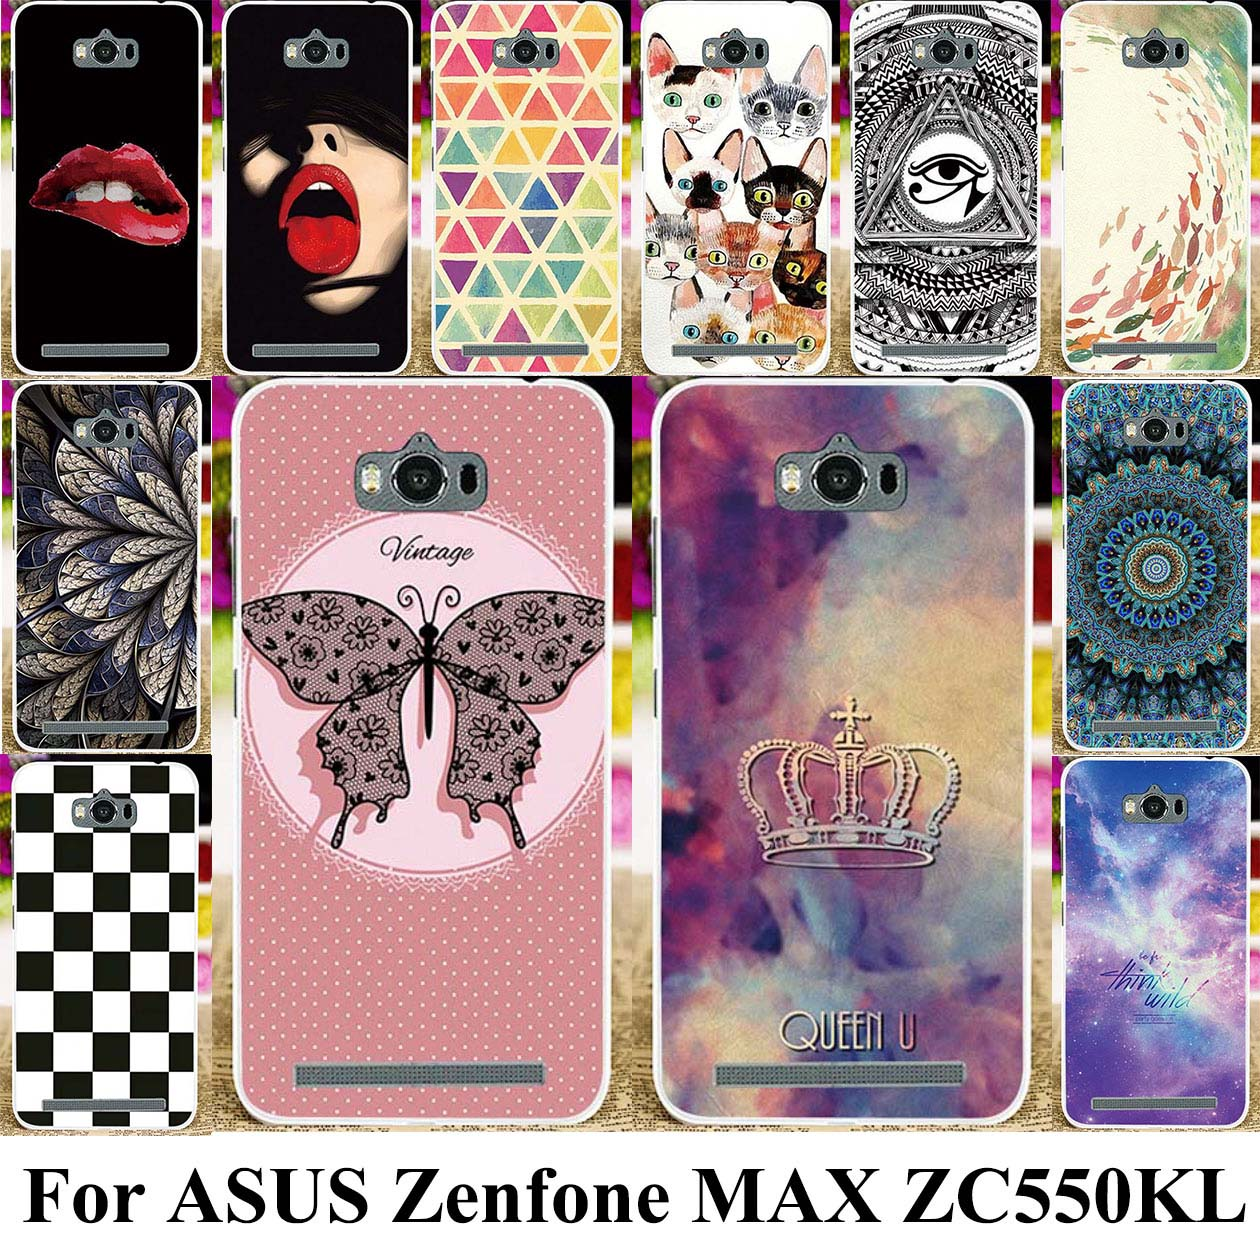 Silicone Mobile Phone Cover Case For ASUS Zenfone MAX ASUS_<font><b>Z010DD</b></font> Bag Shell Case Z010D ZC550KL Z010DA 5.5 inch image